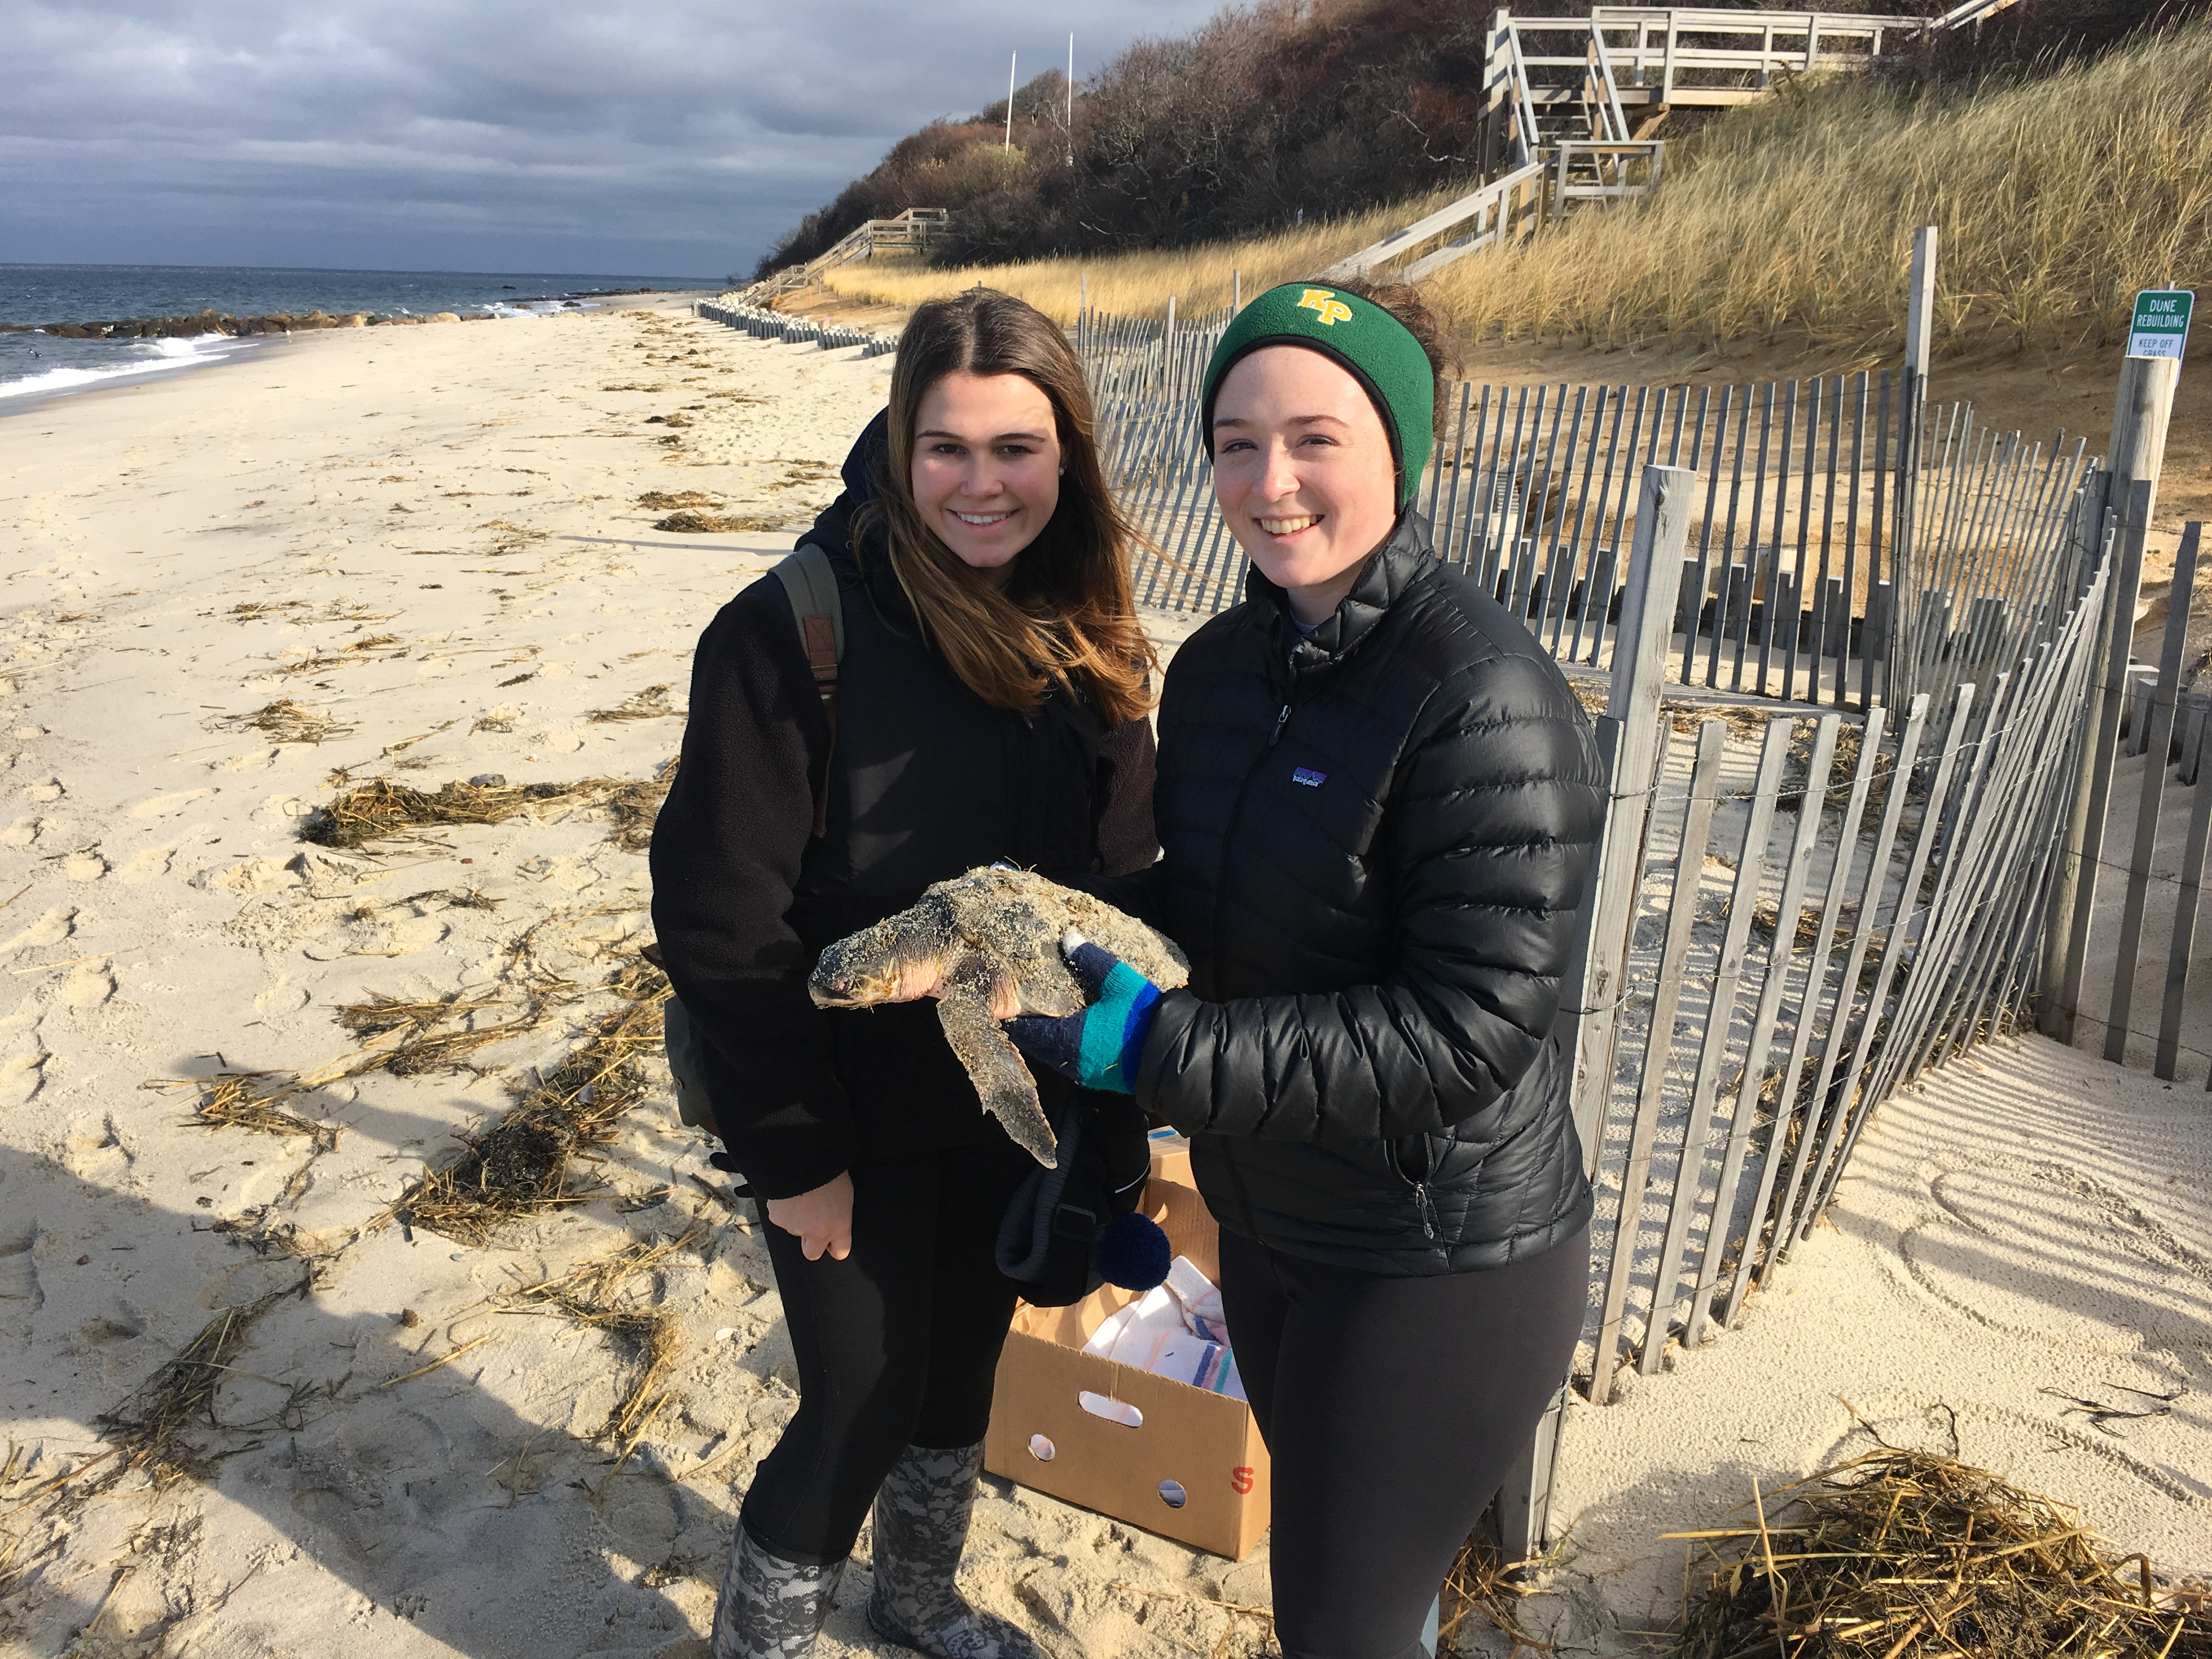 Alex (left) and Abby (right) with a rescued Kemp's ridley